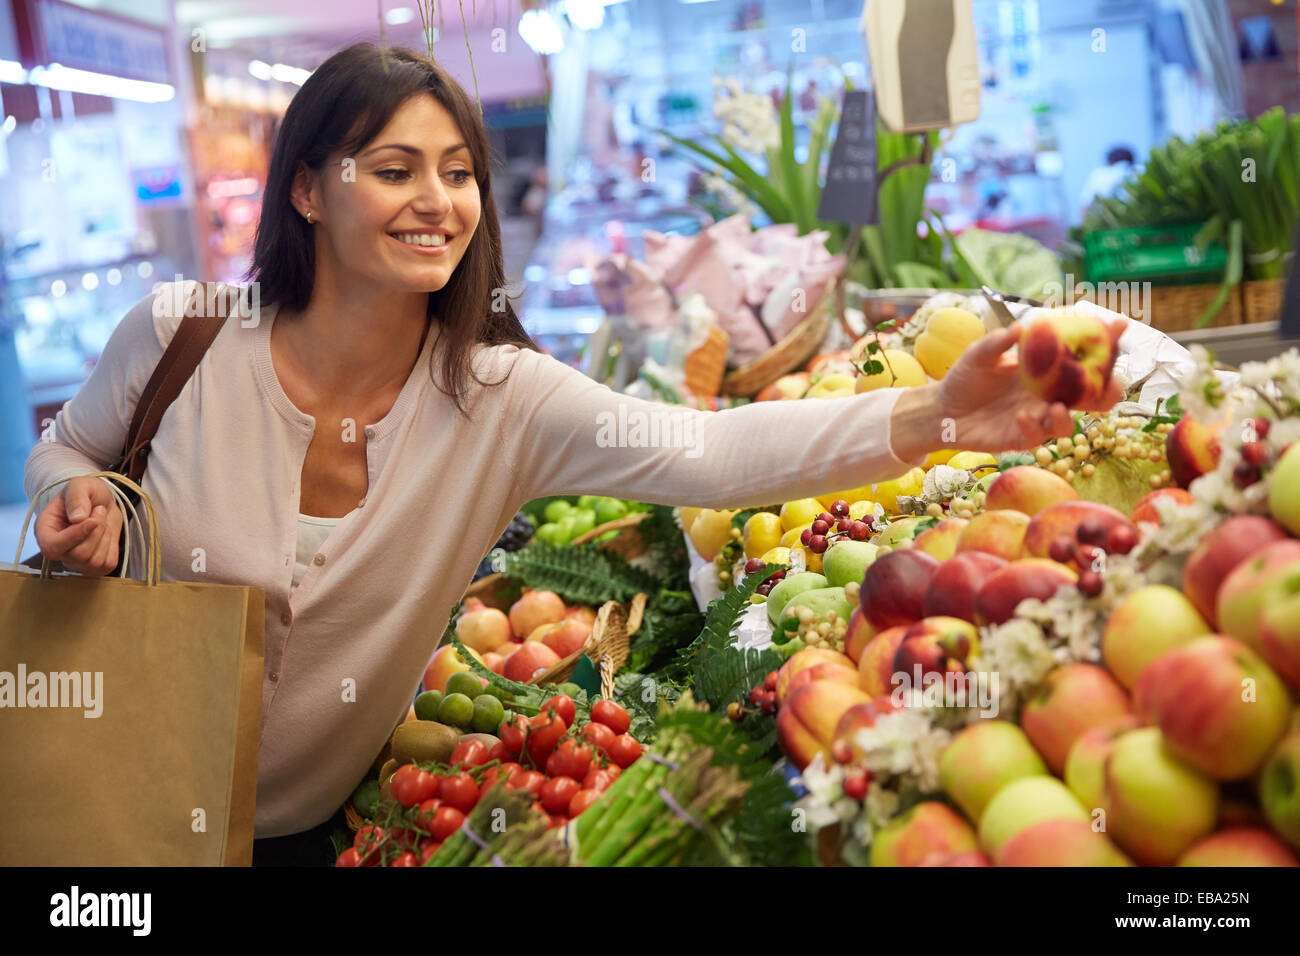 35 Year Old Woman Buying Fruit. Shopping At The Bretxa